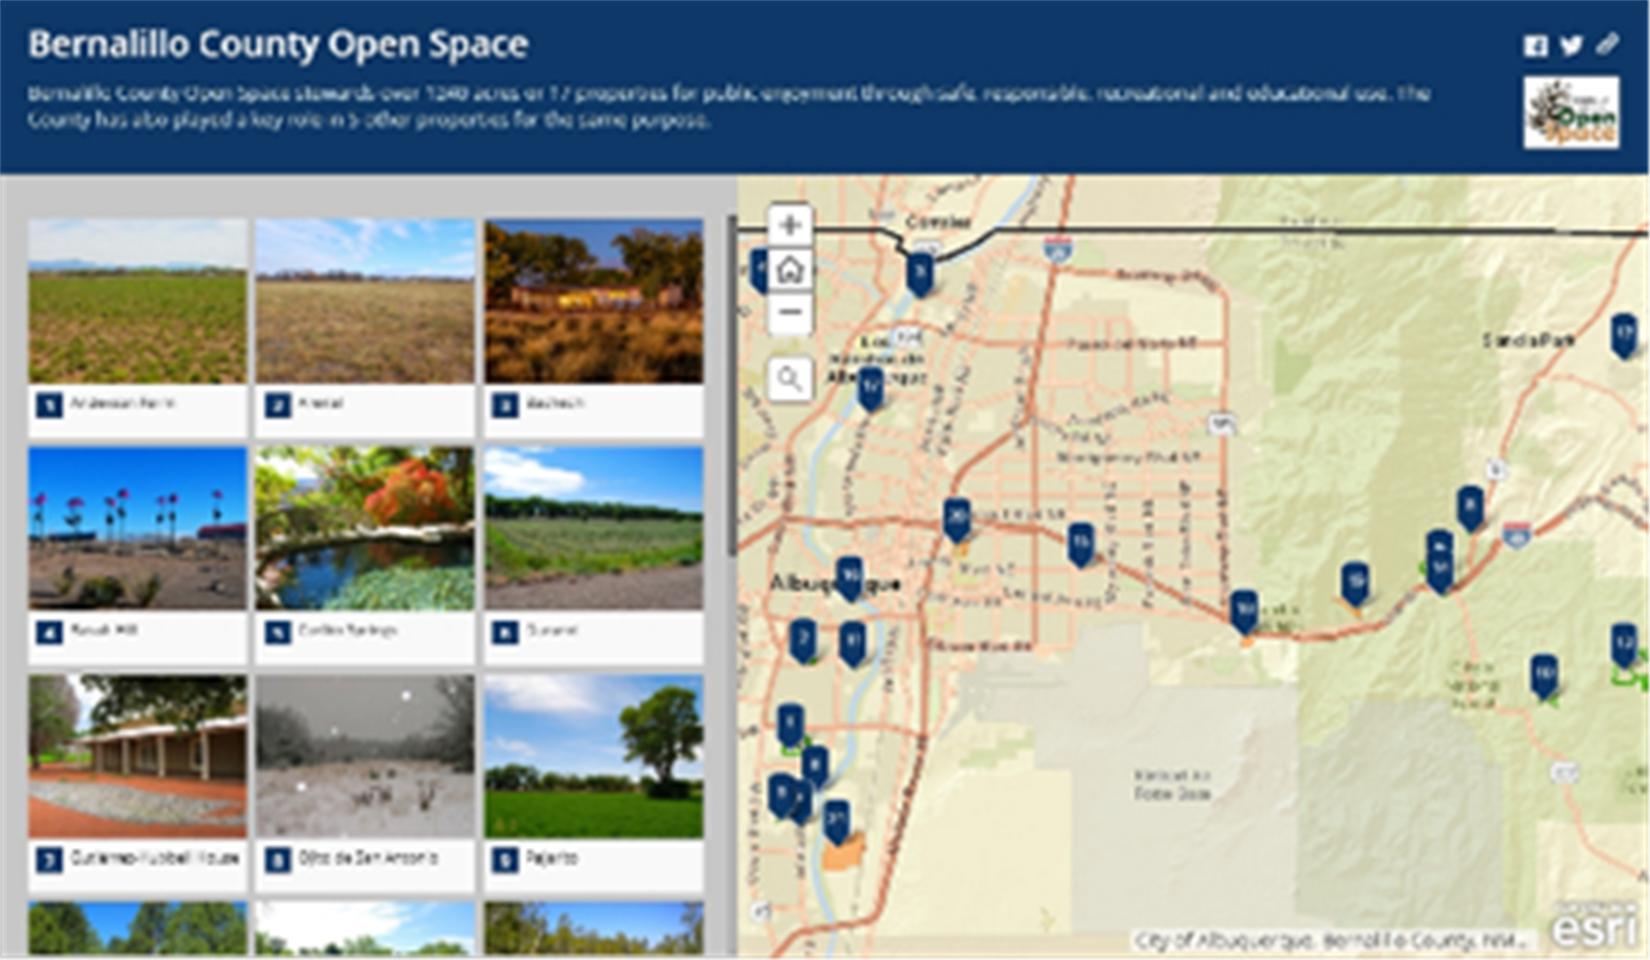 Map and images of open spaces